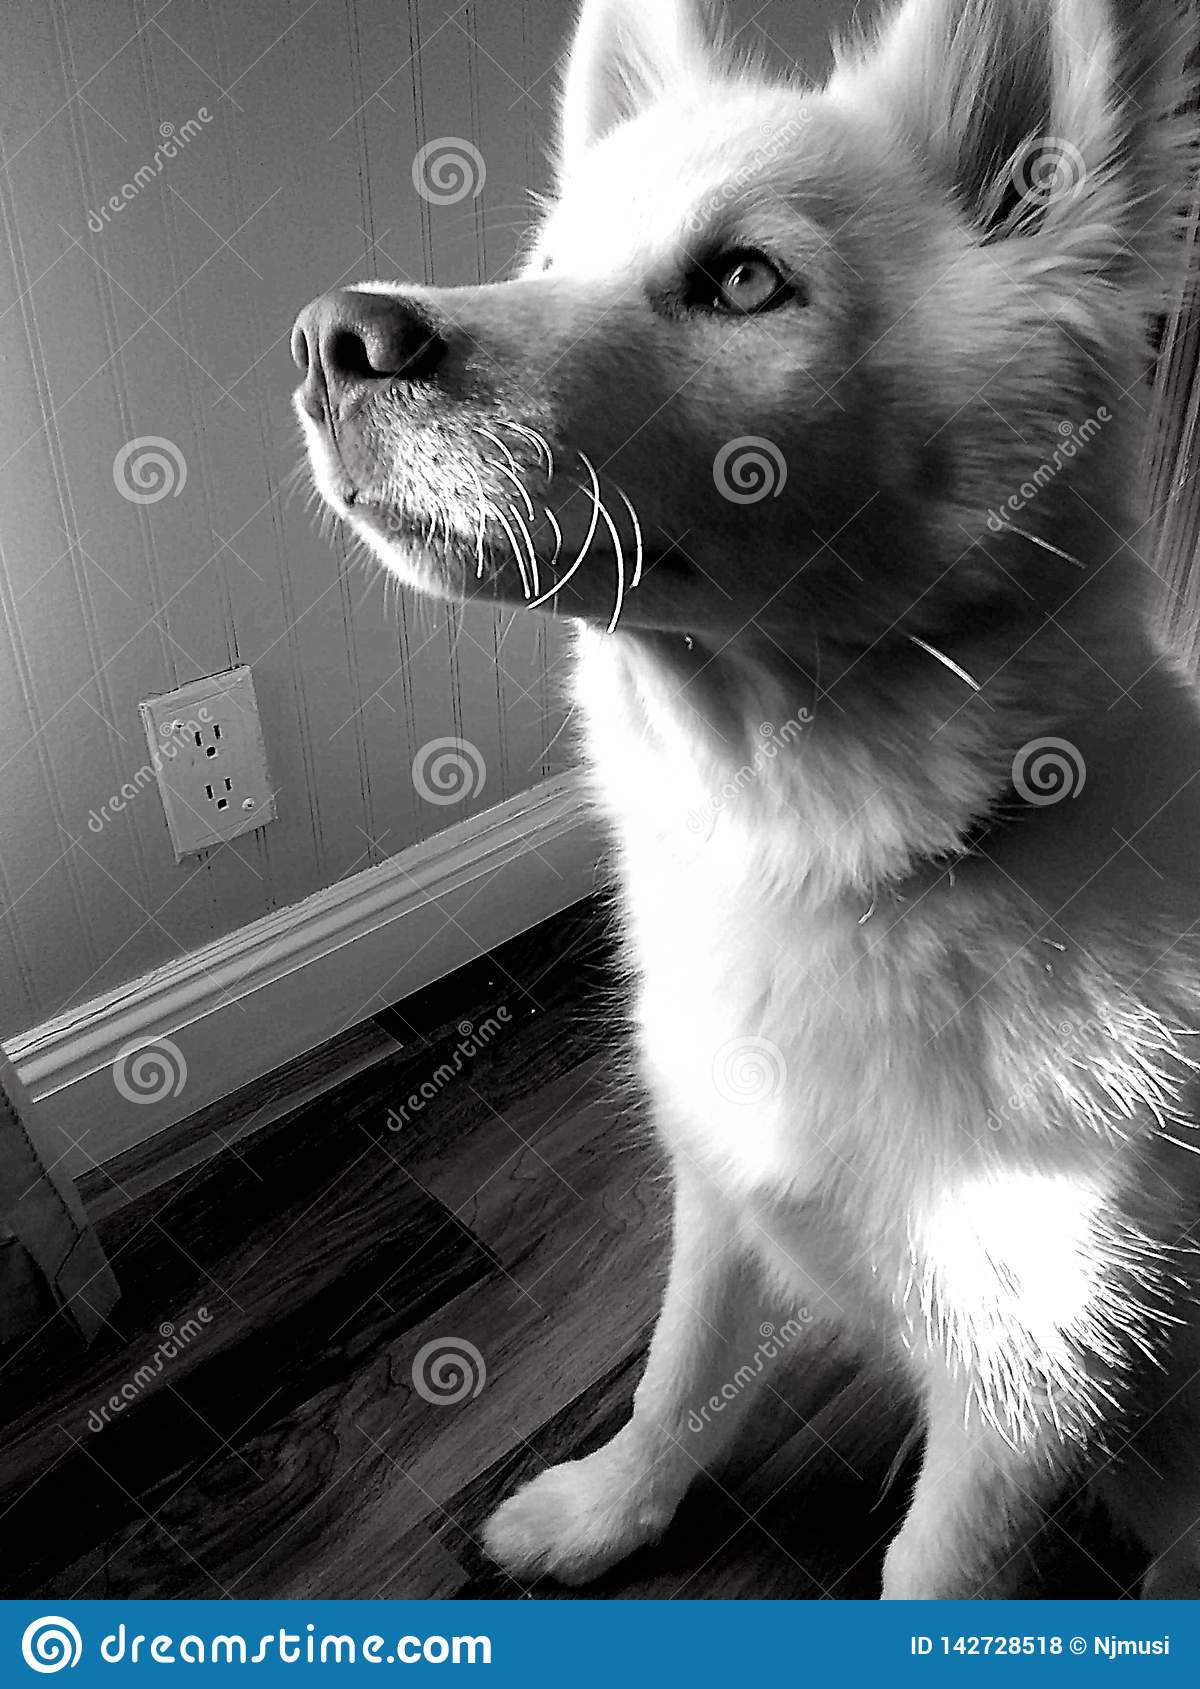 Meet Blue. Husky pure posed purebred dog puppy royalty free stock photos